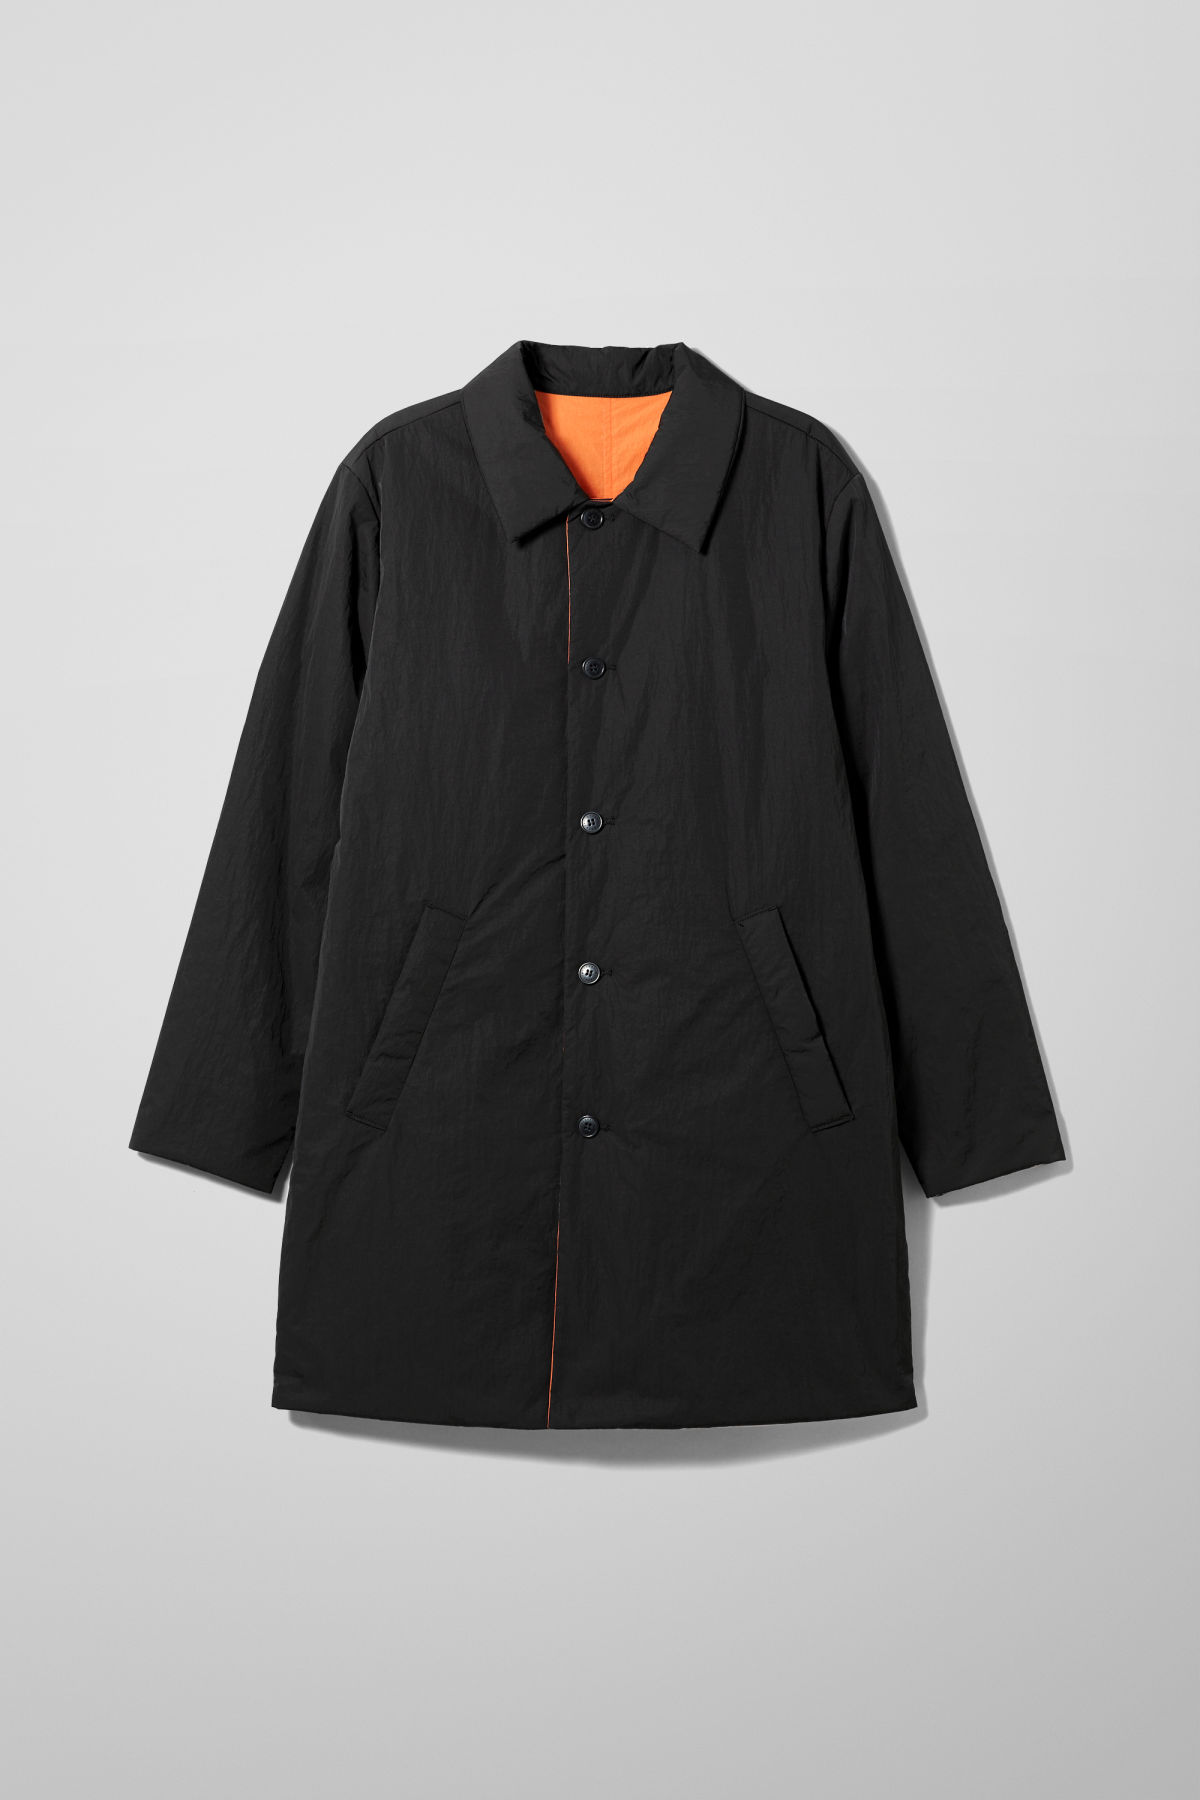 Marty Reversible Coat - Black